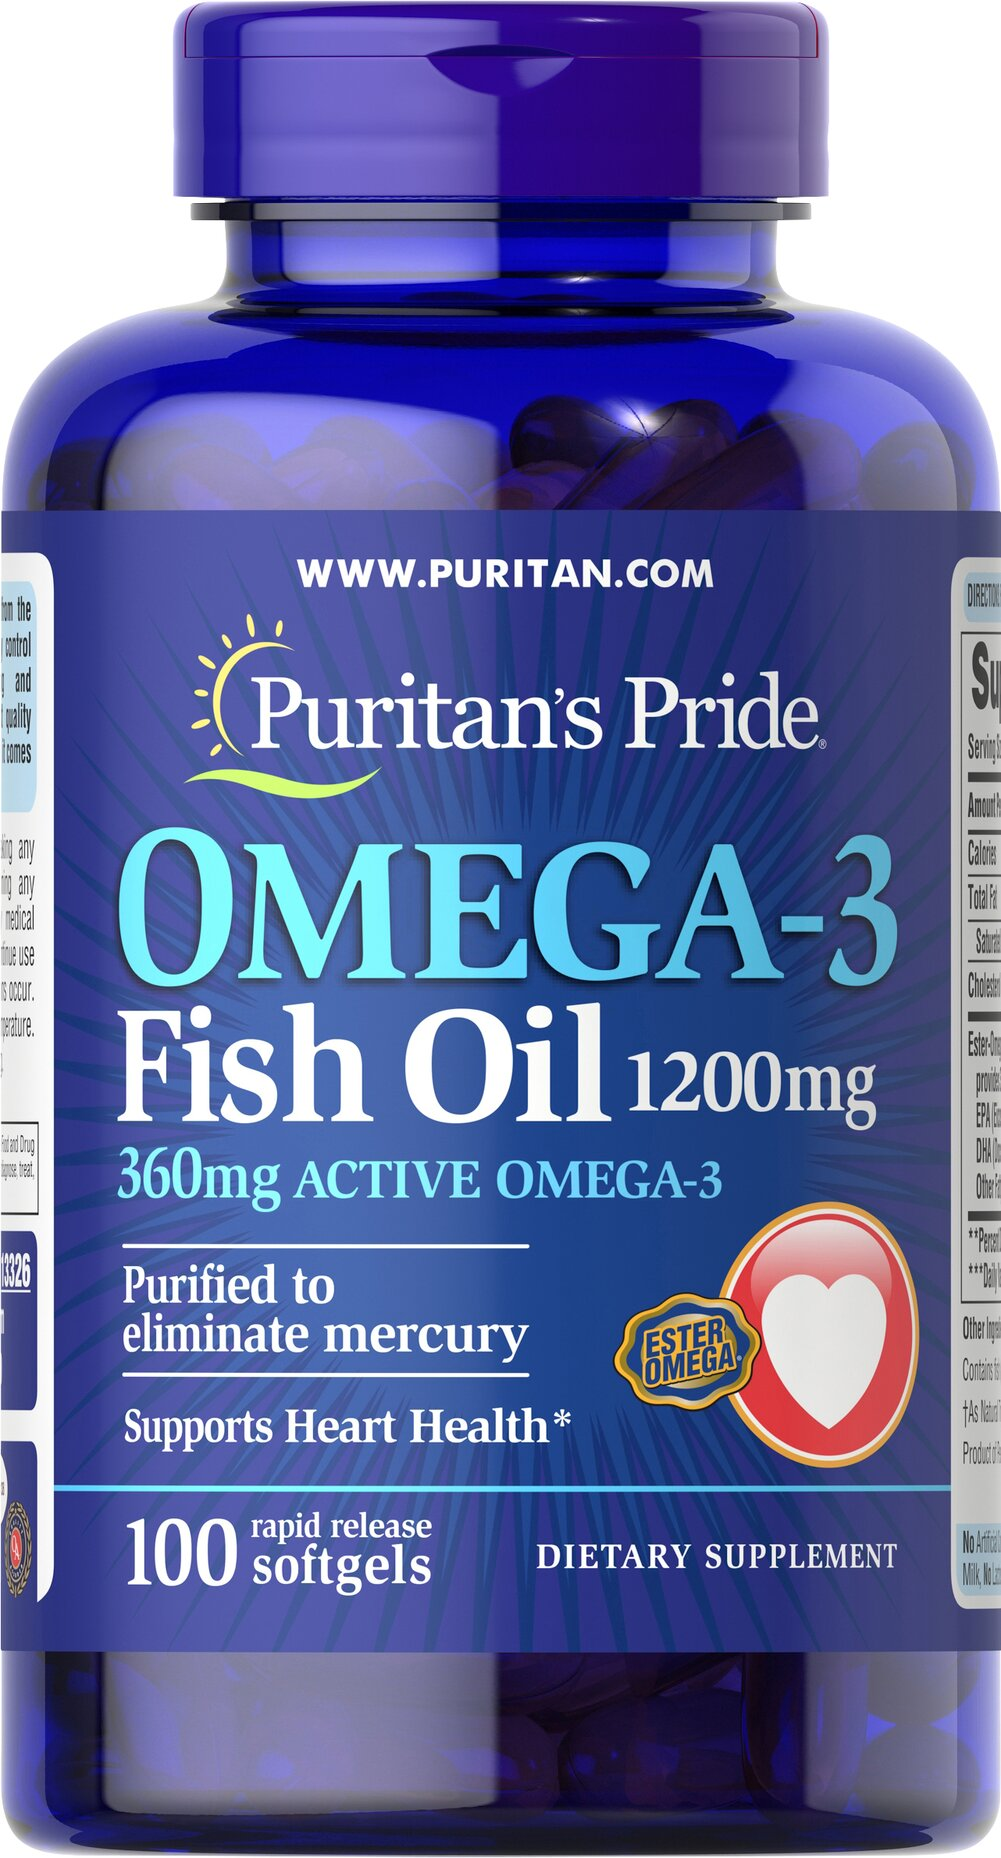 omega 3 fish oil 1200 mg 360 mg active omega 3 100